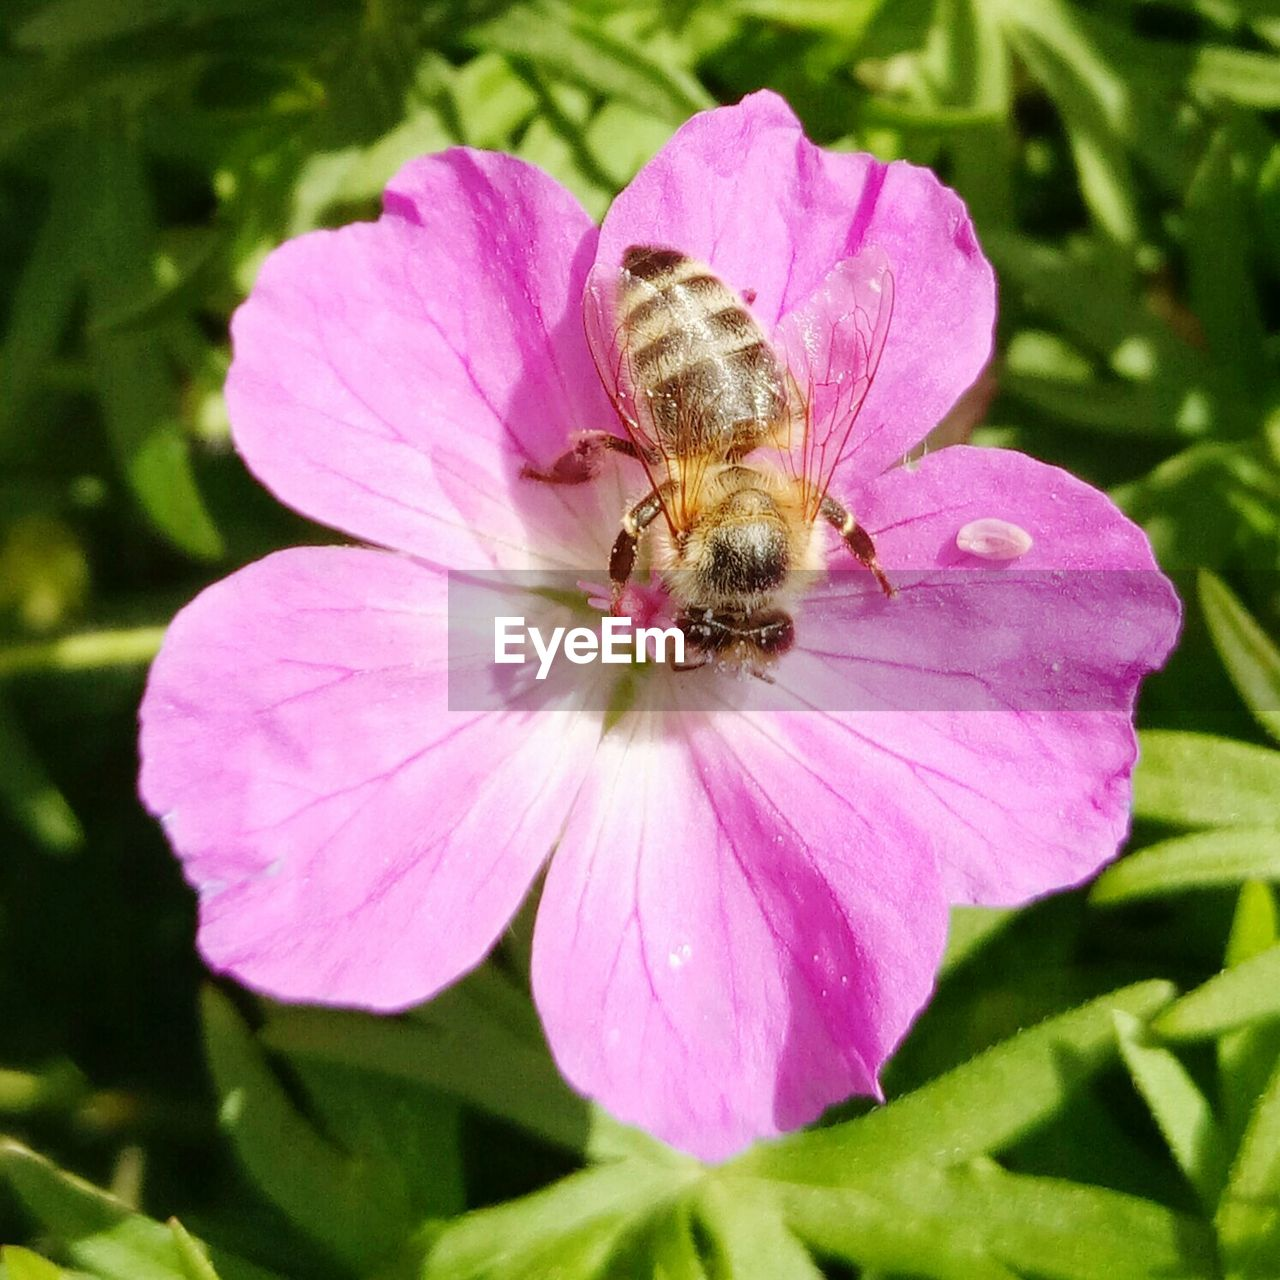 flower, one animal, petal, nature, fragility, growth, plant, animal themes, insect, freshness, beauty in nature, animals in the wild, flower head, day, outdoors, no people, leaf, bee, pink color, animal wildlife, close-up, pollination, blooming